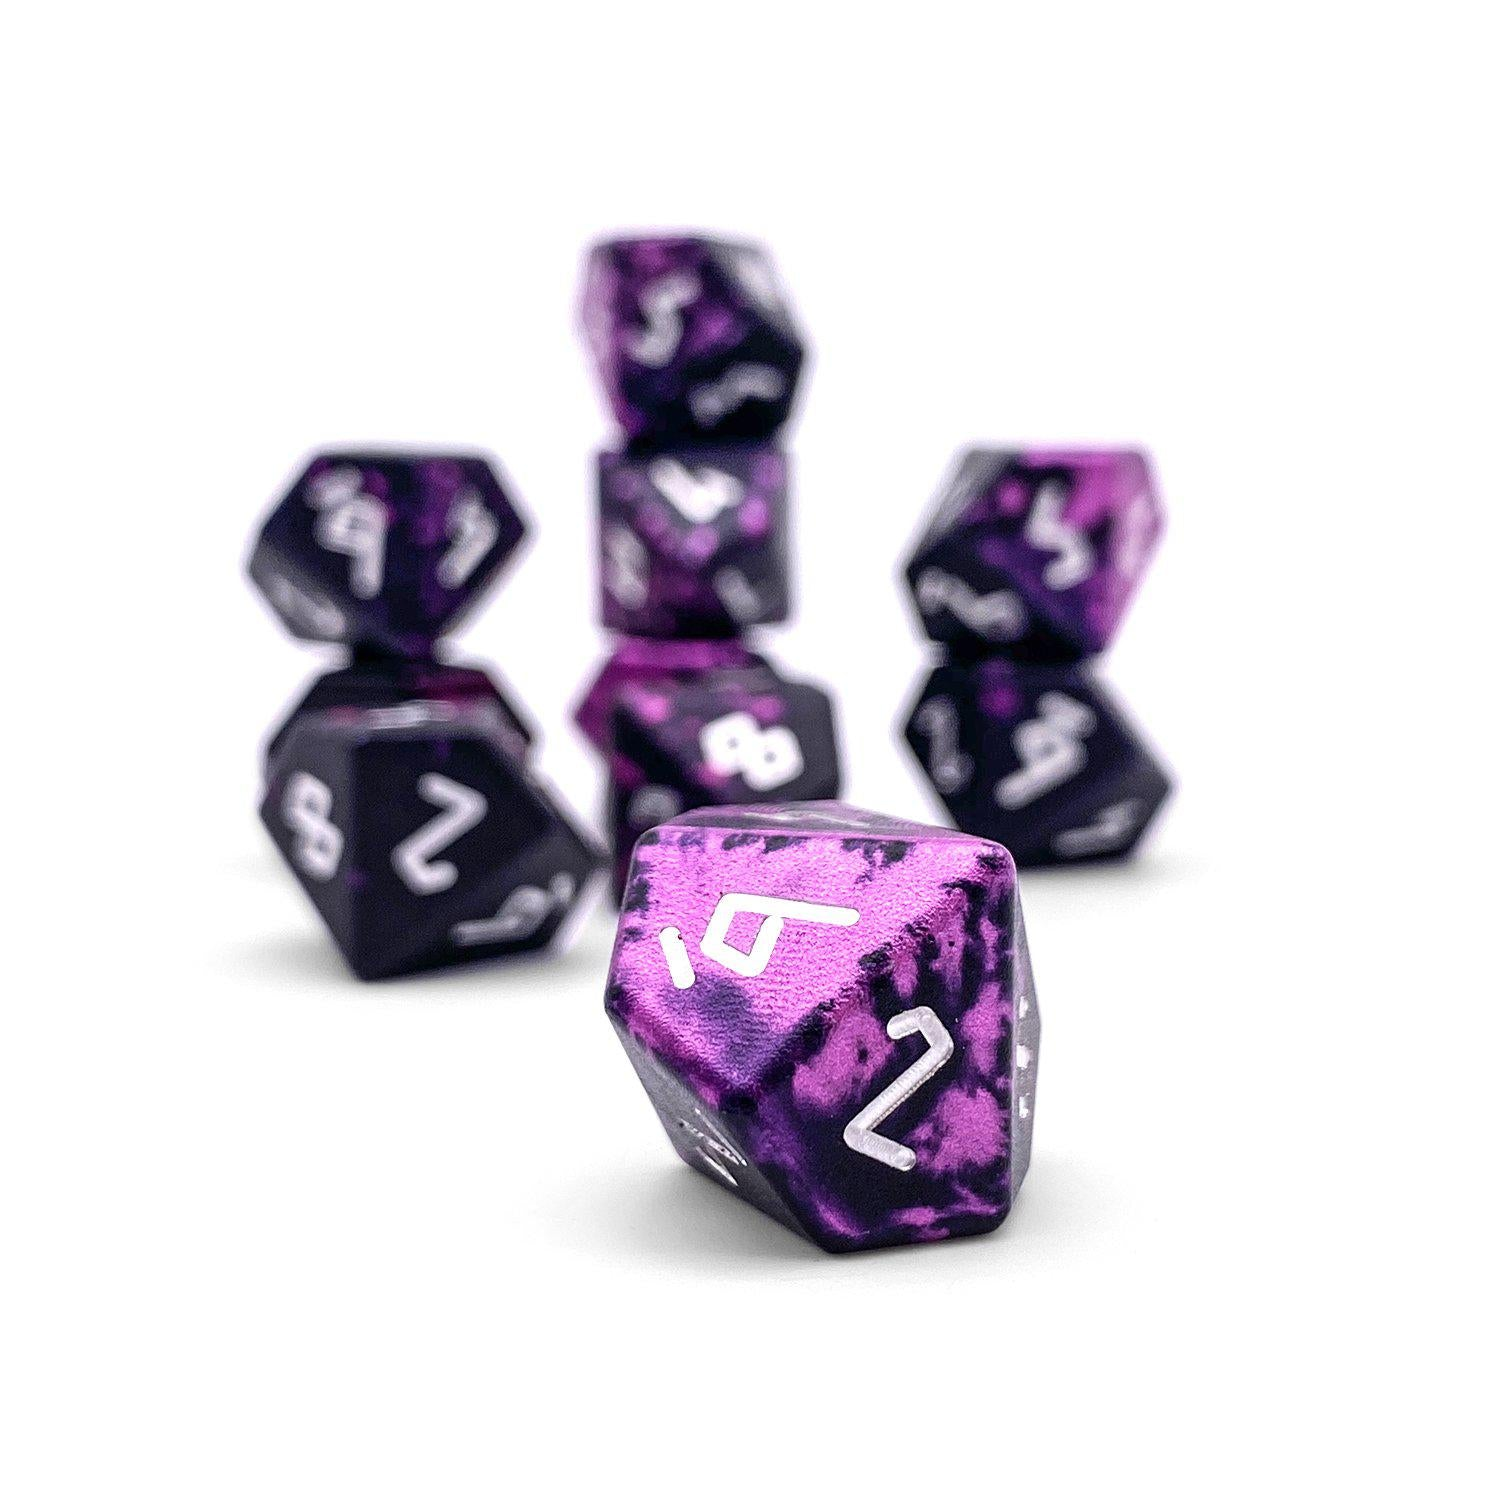 Eldritch - Set of 10 D10s - Wondrous Dice